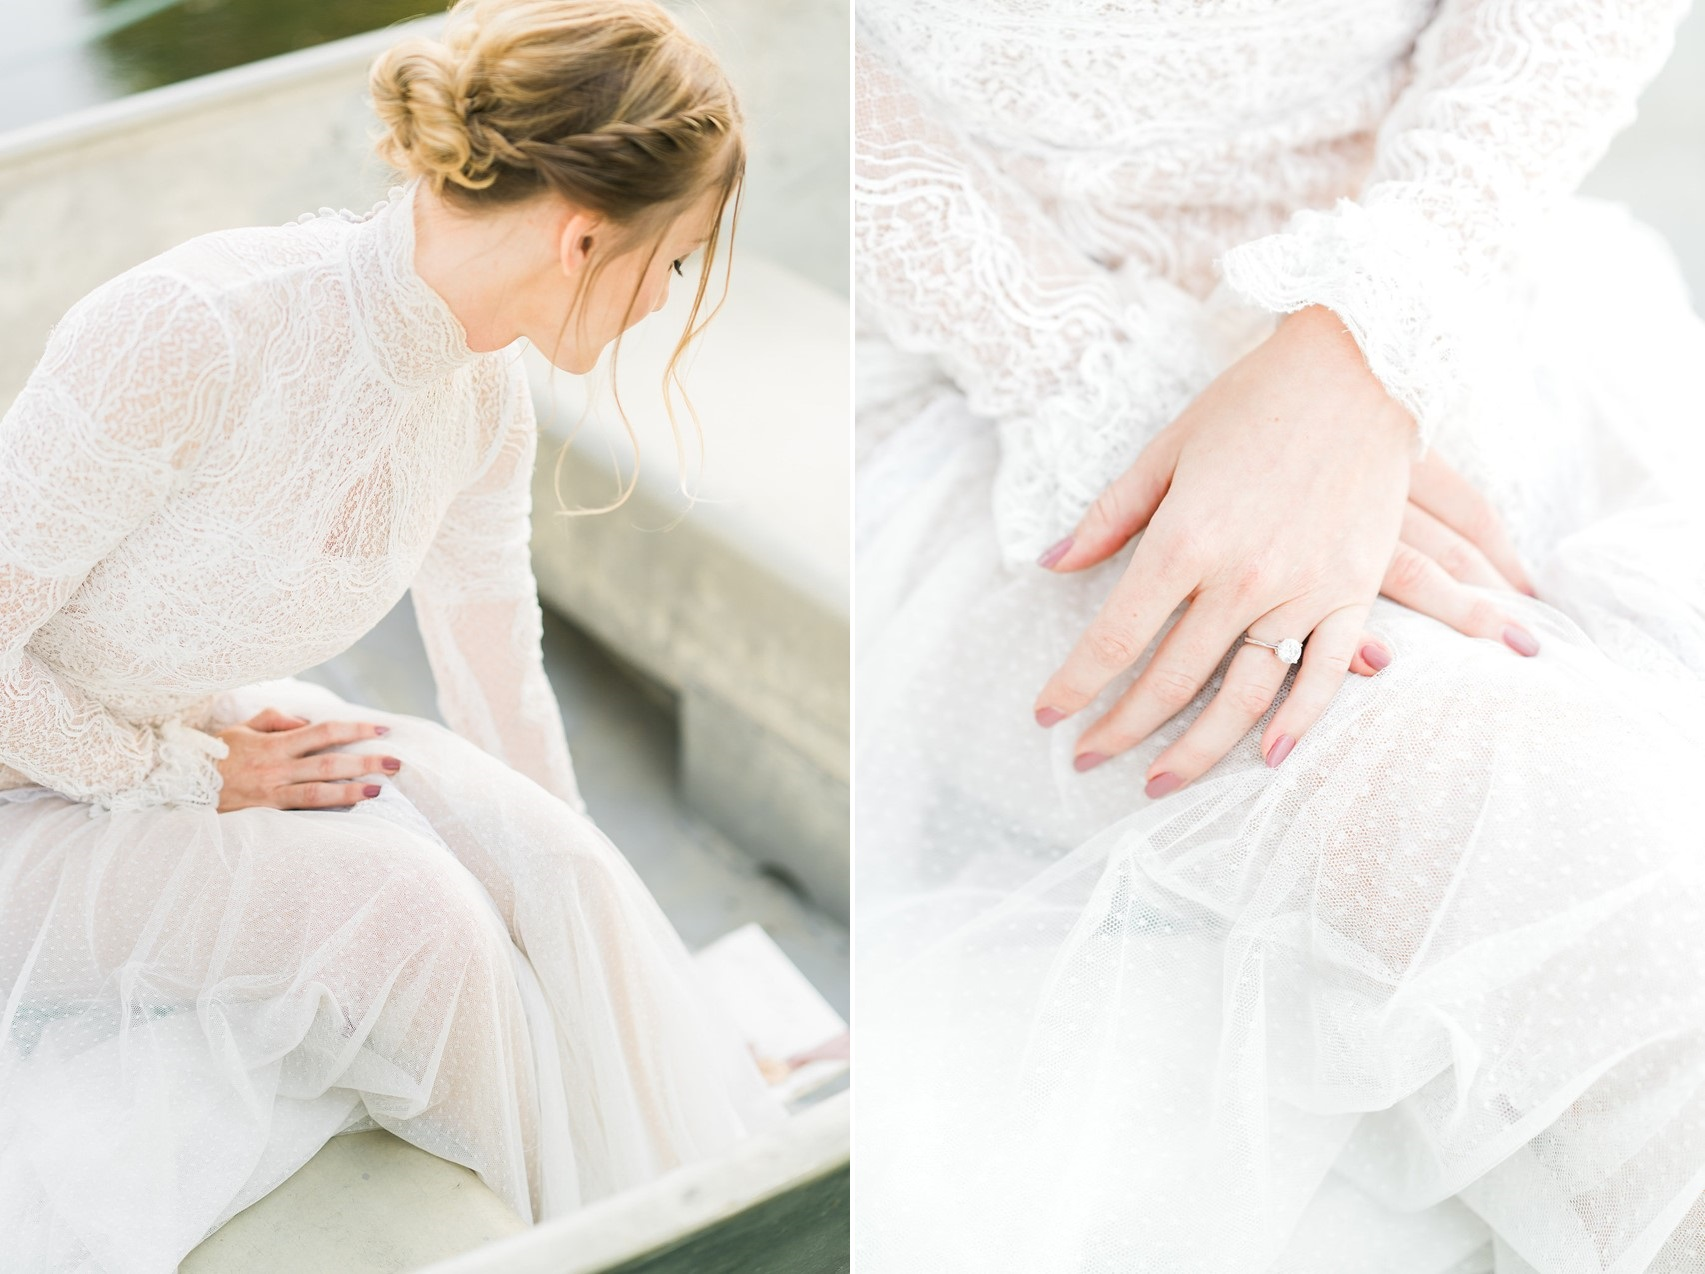 Long Lace Sleeved Wedding Dress & Engagement Ring